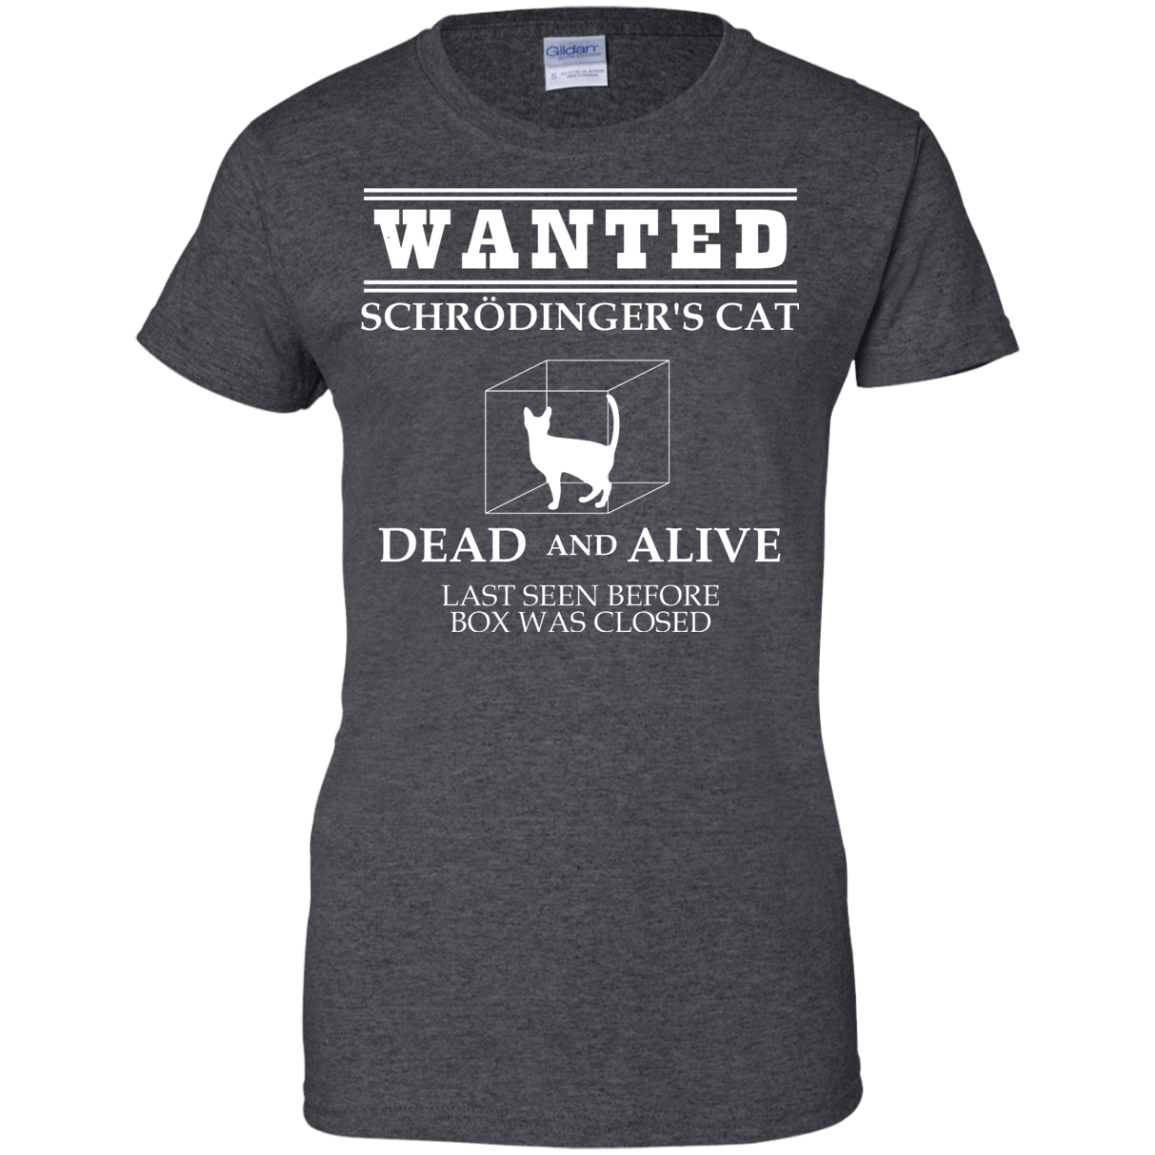 694855adf Wanted Schrodinger's Cat | Funny T-shirts | Engineering Outfitters